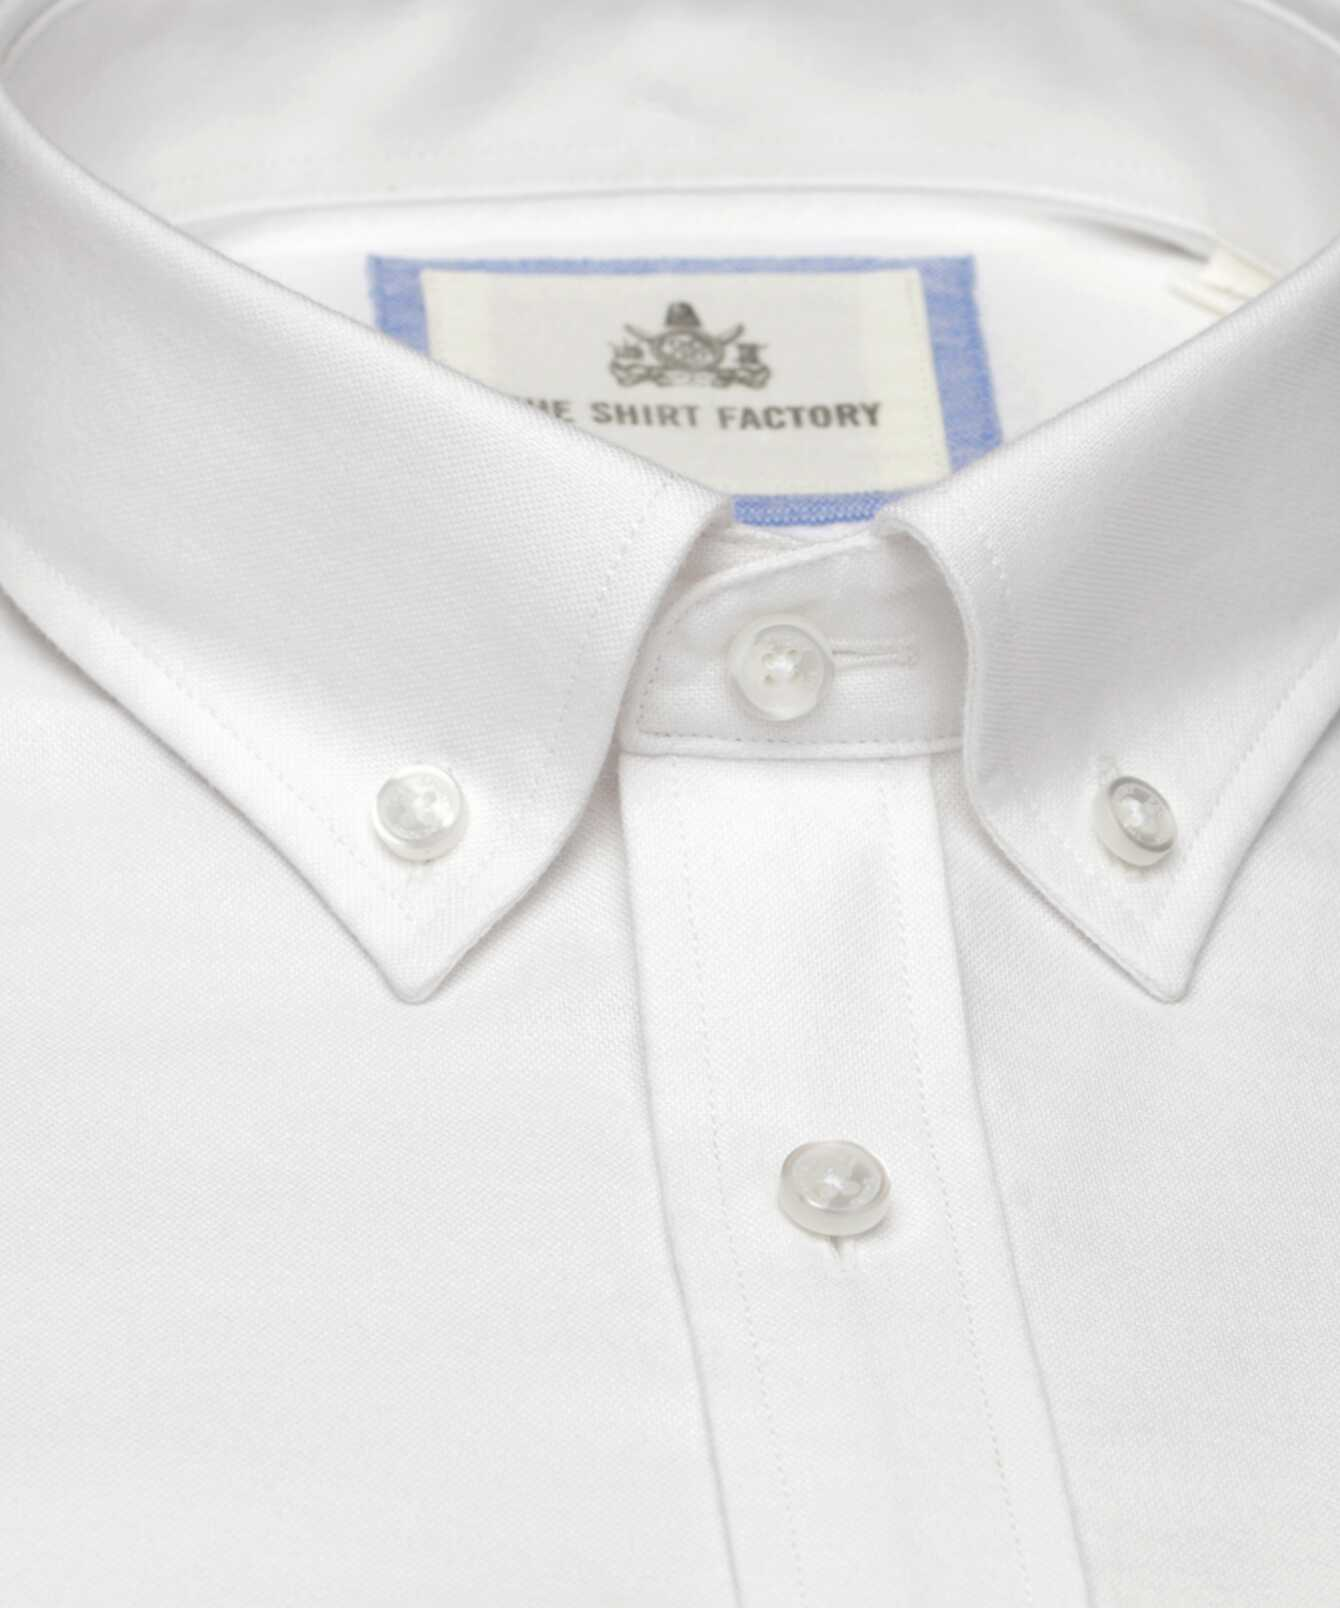 Shirt Hampton Oxford White The Shirt Factory